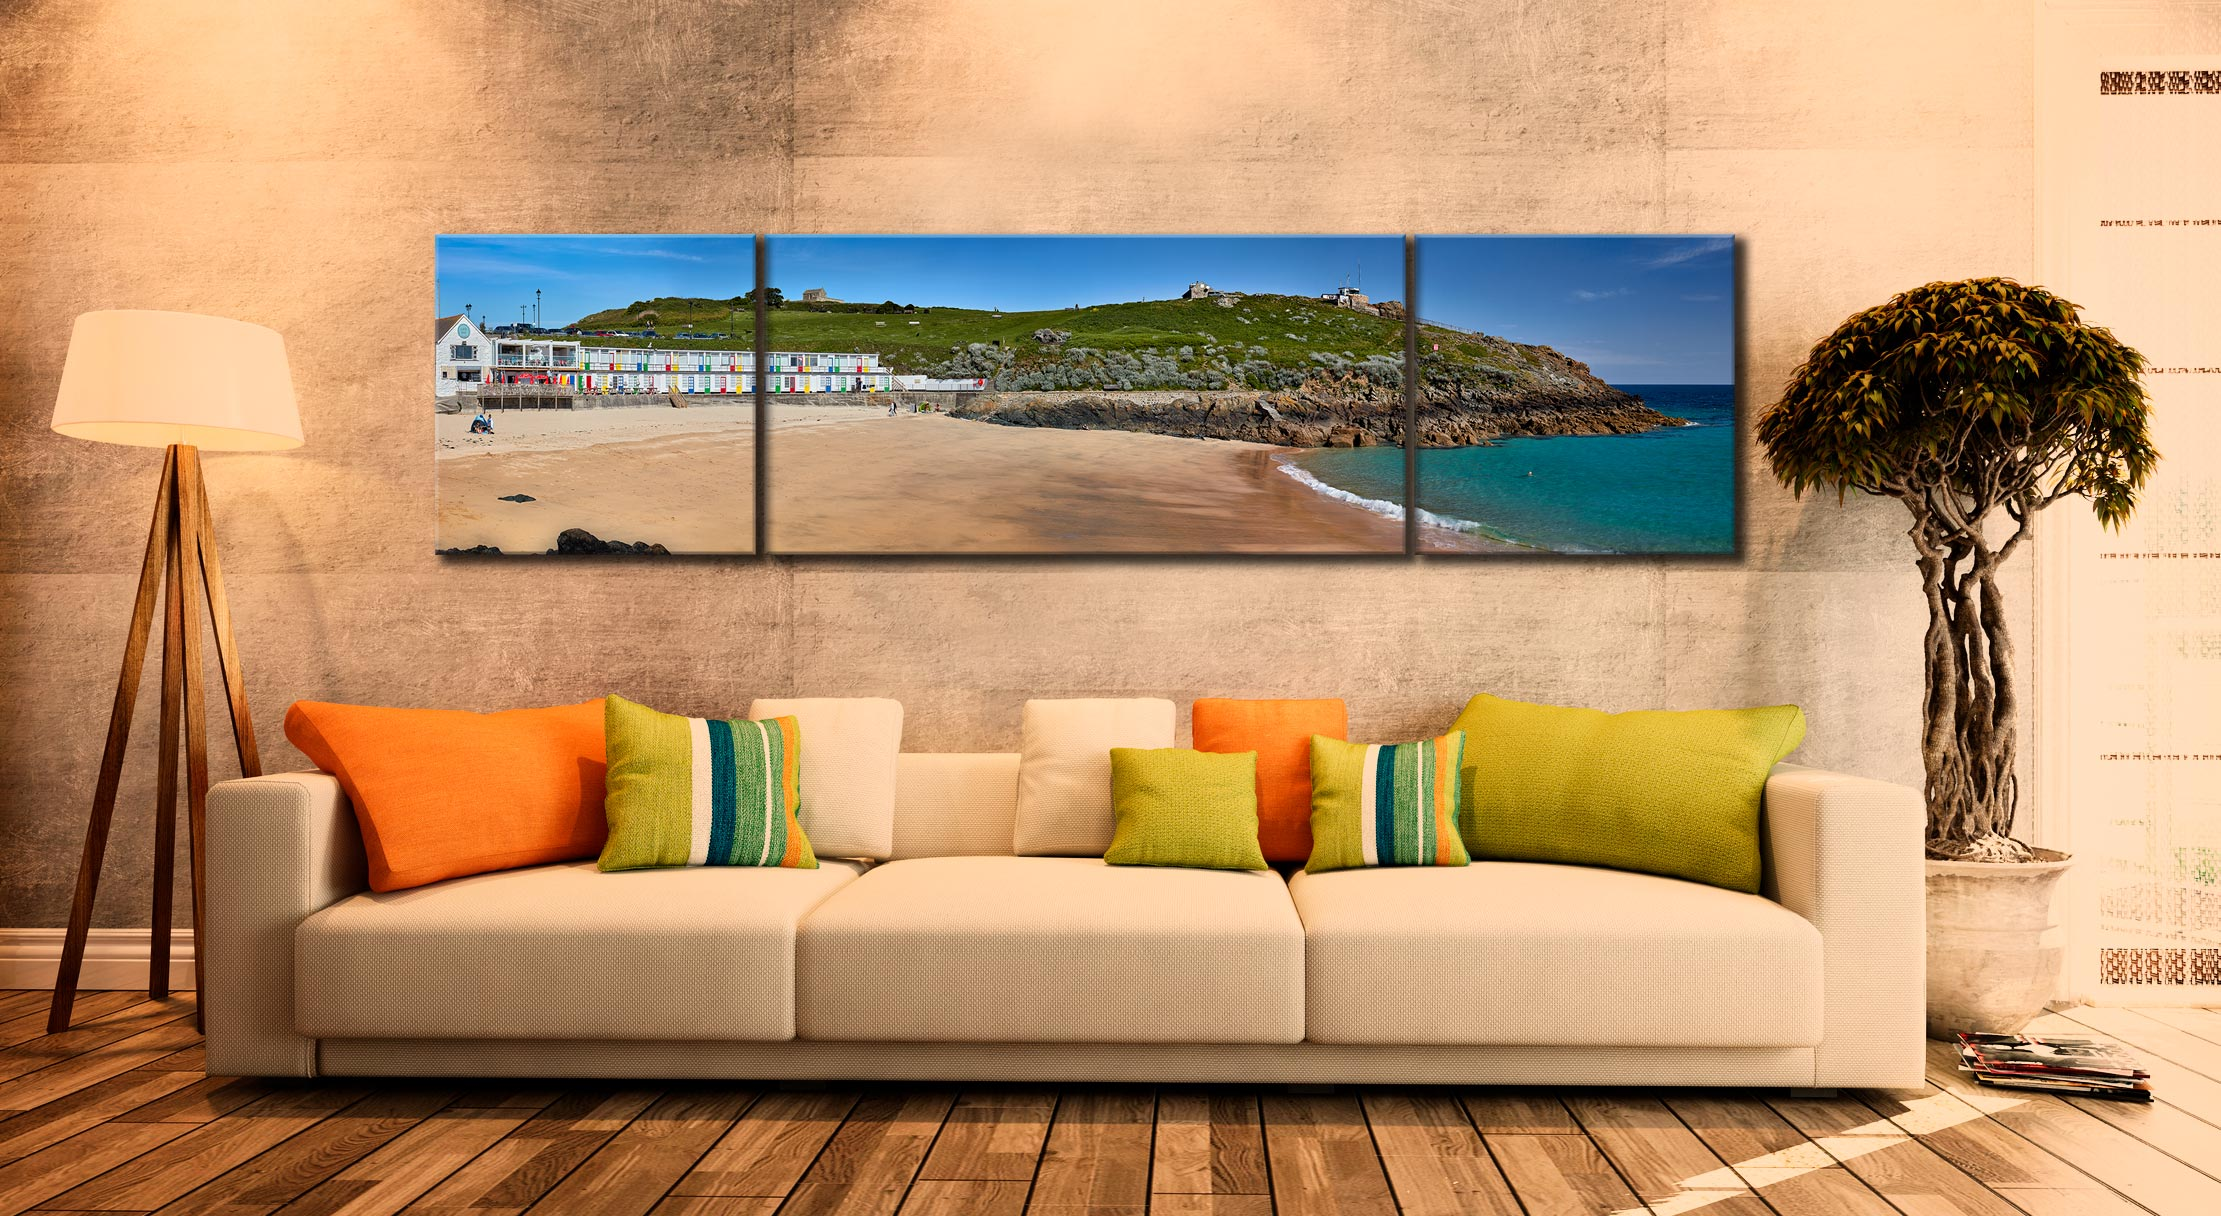 Porthgwidden Beach The Island - 3 Panel Wide Centre Canvas on Wall